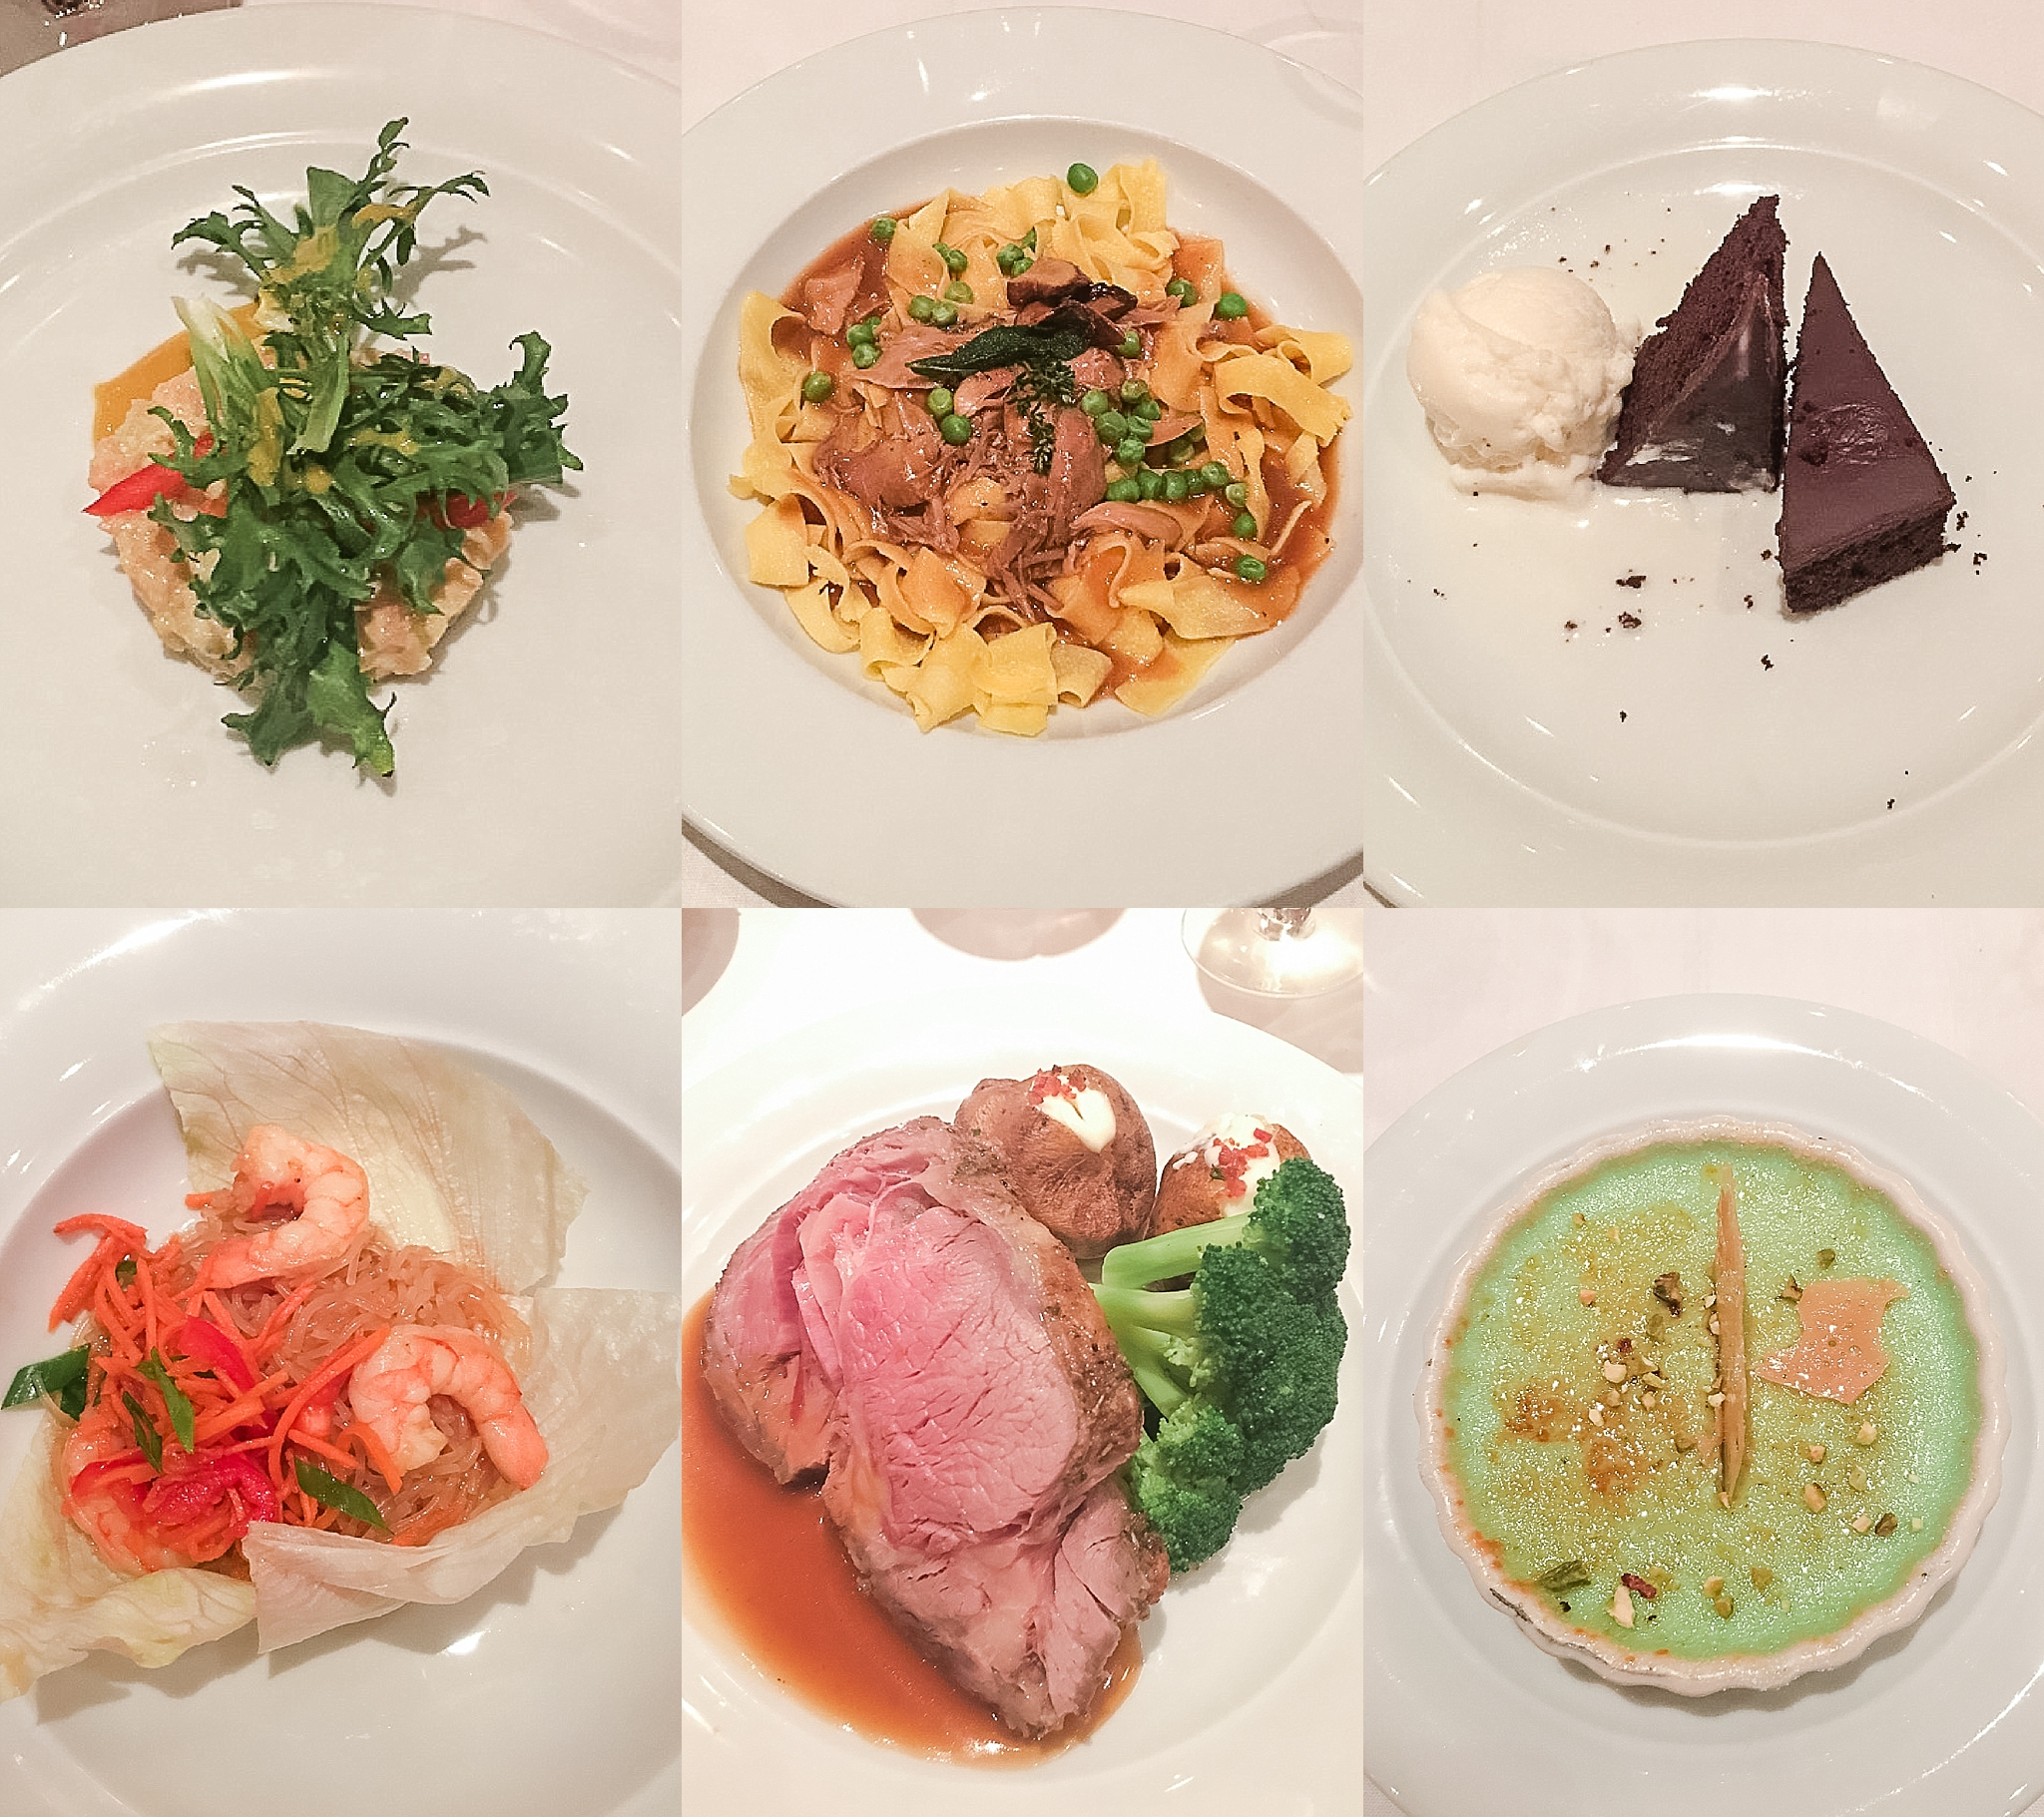 Dinner at the Liberty Dining Room on the Pride of America cruise ship. Photos by Jade Min Photography.